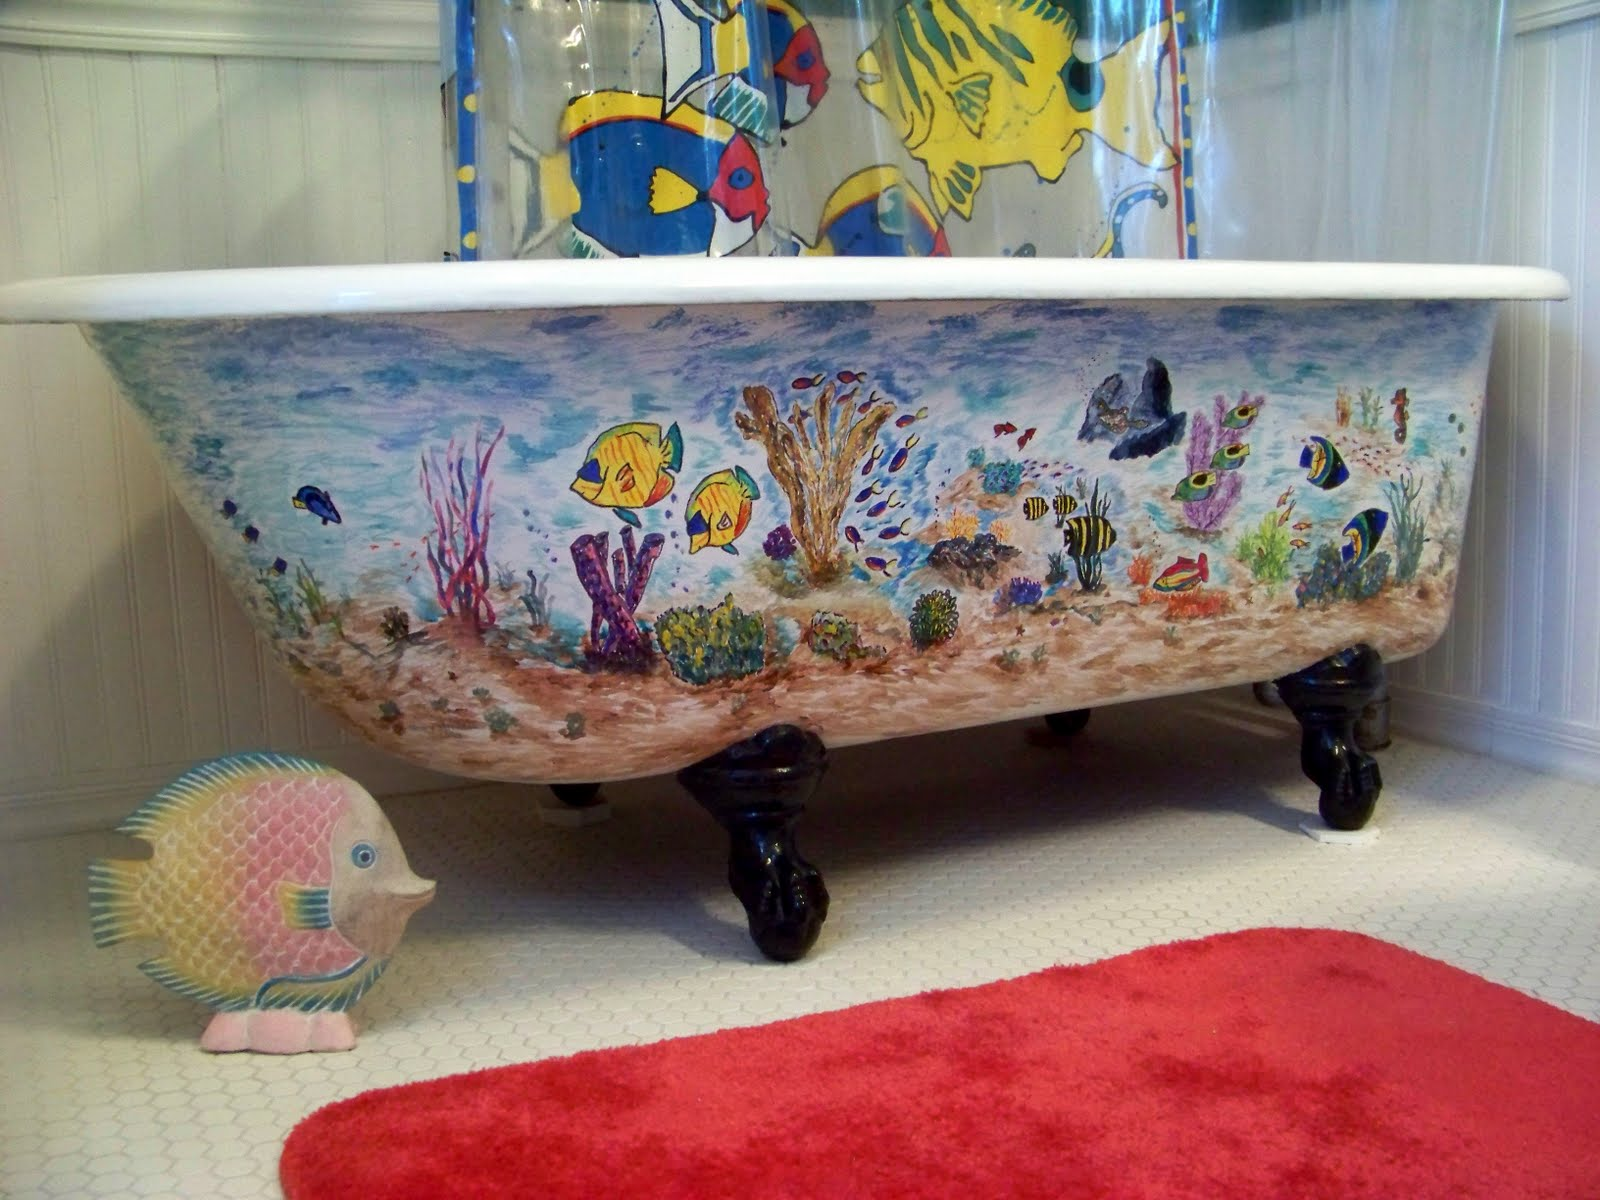 How to Refinish your Bathtub Yourself